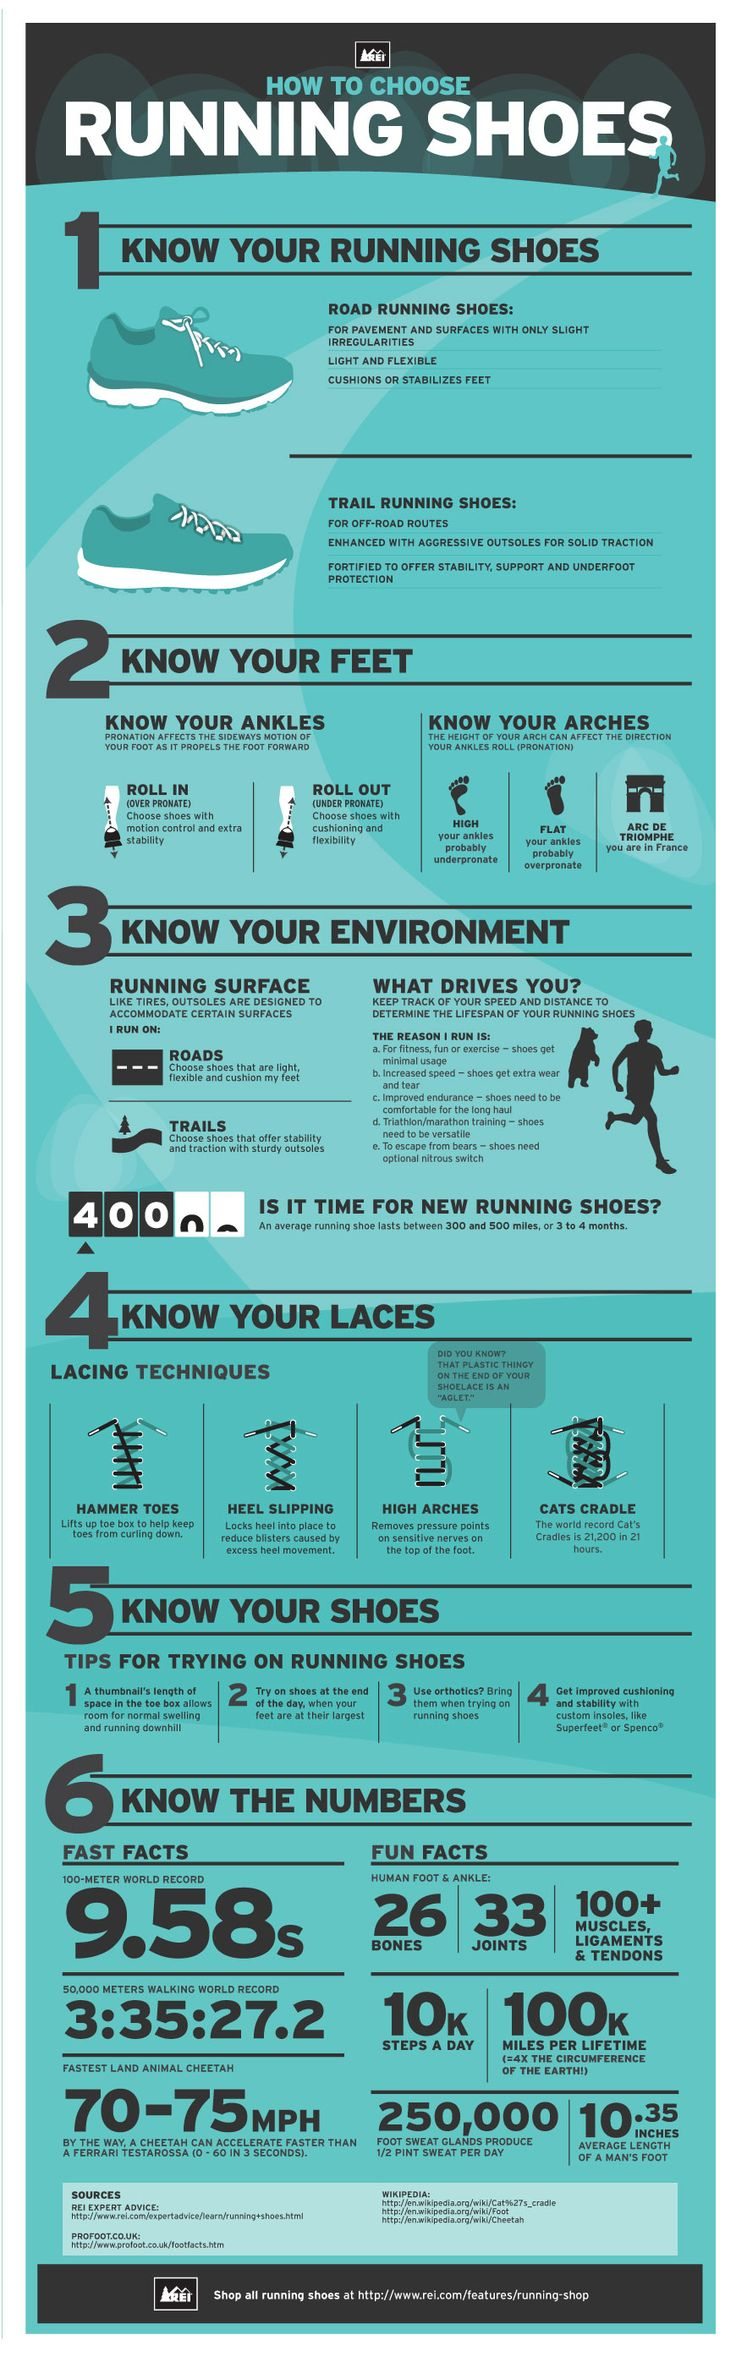 Facts about your running sneaks